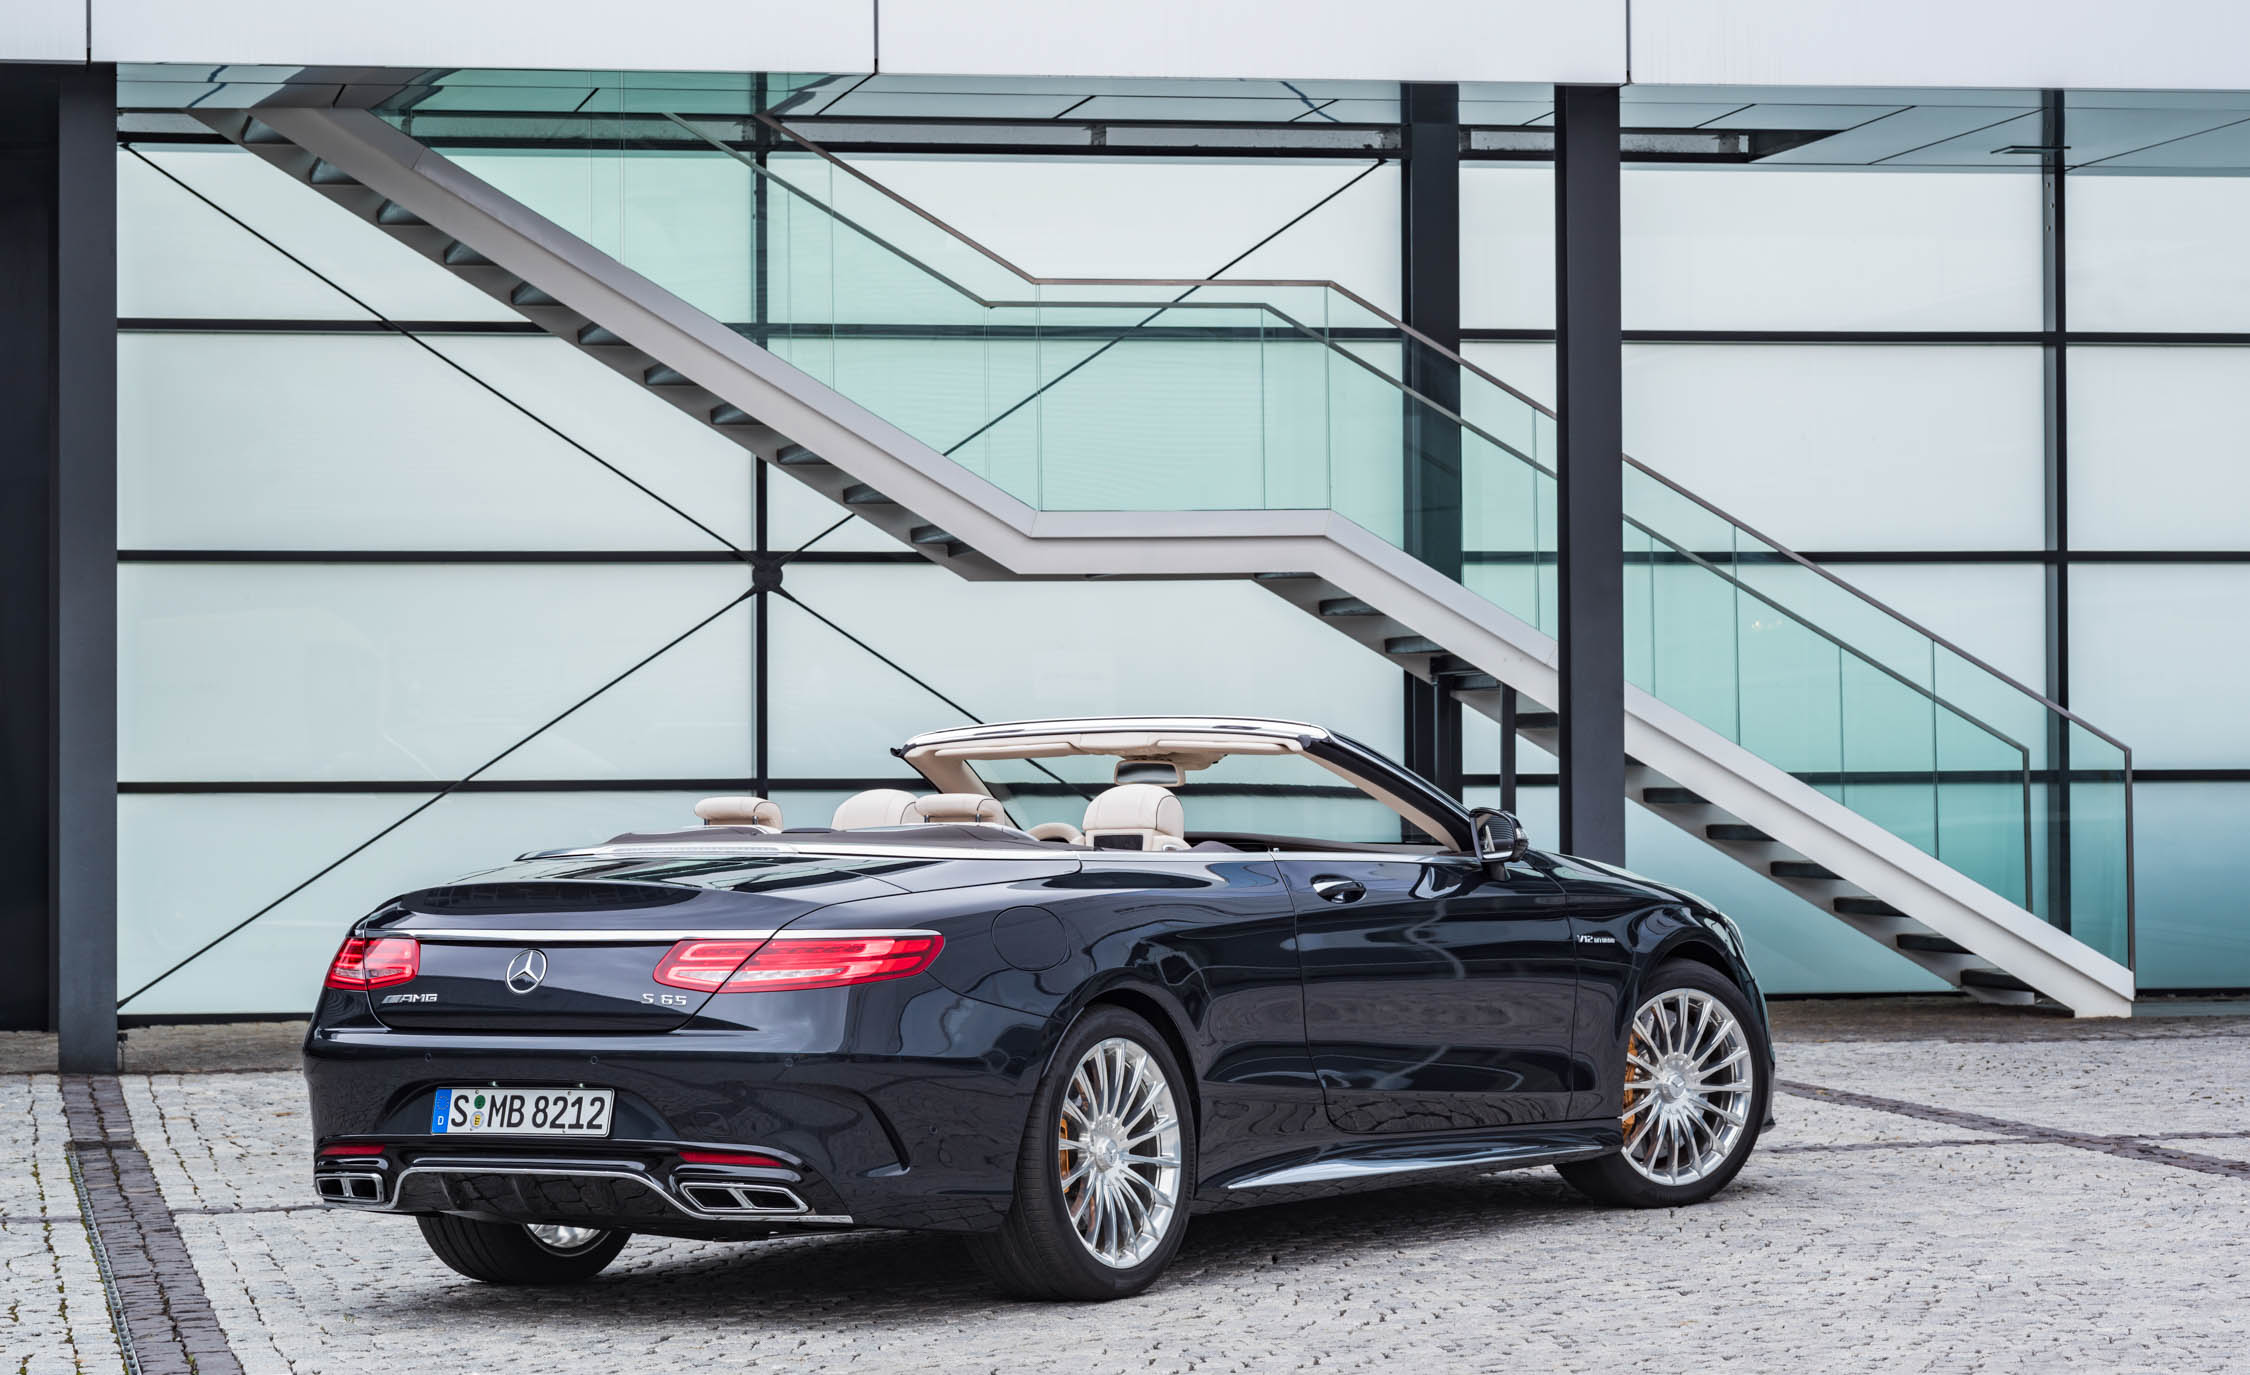 2017 Mercedes Amg S65 Cabriolet Exterior Rear And Side View Roof Open (Photo 6 of 15)